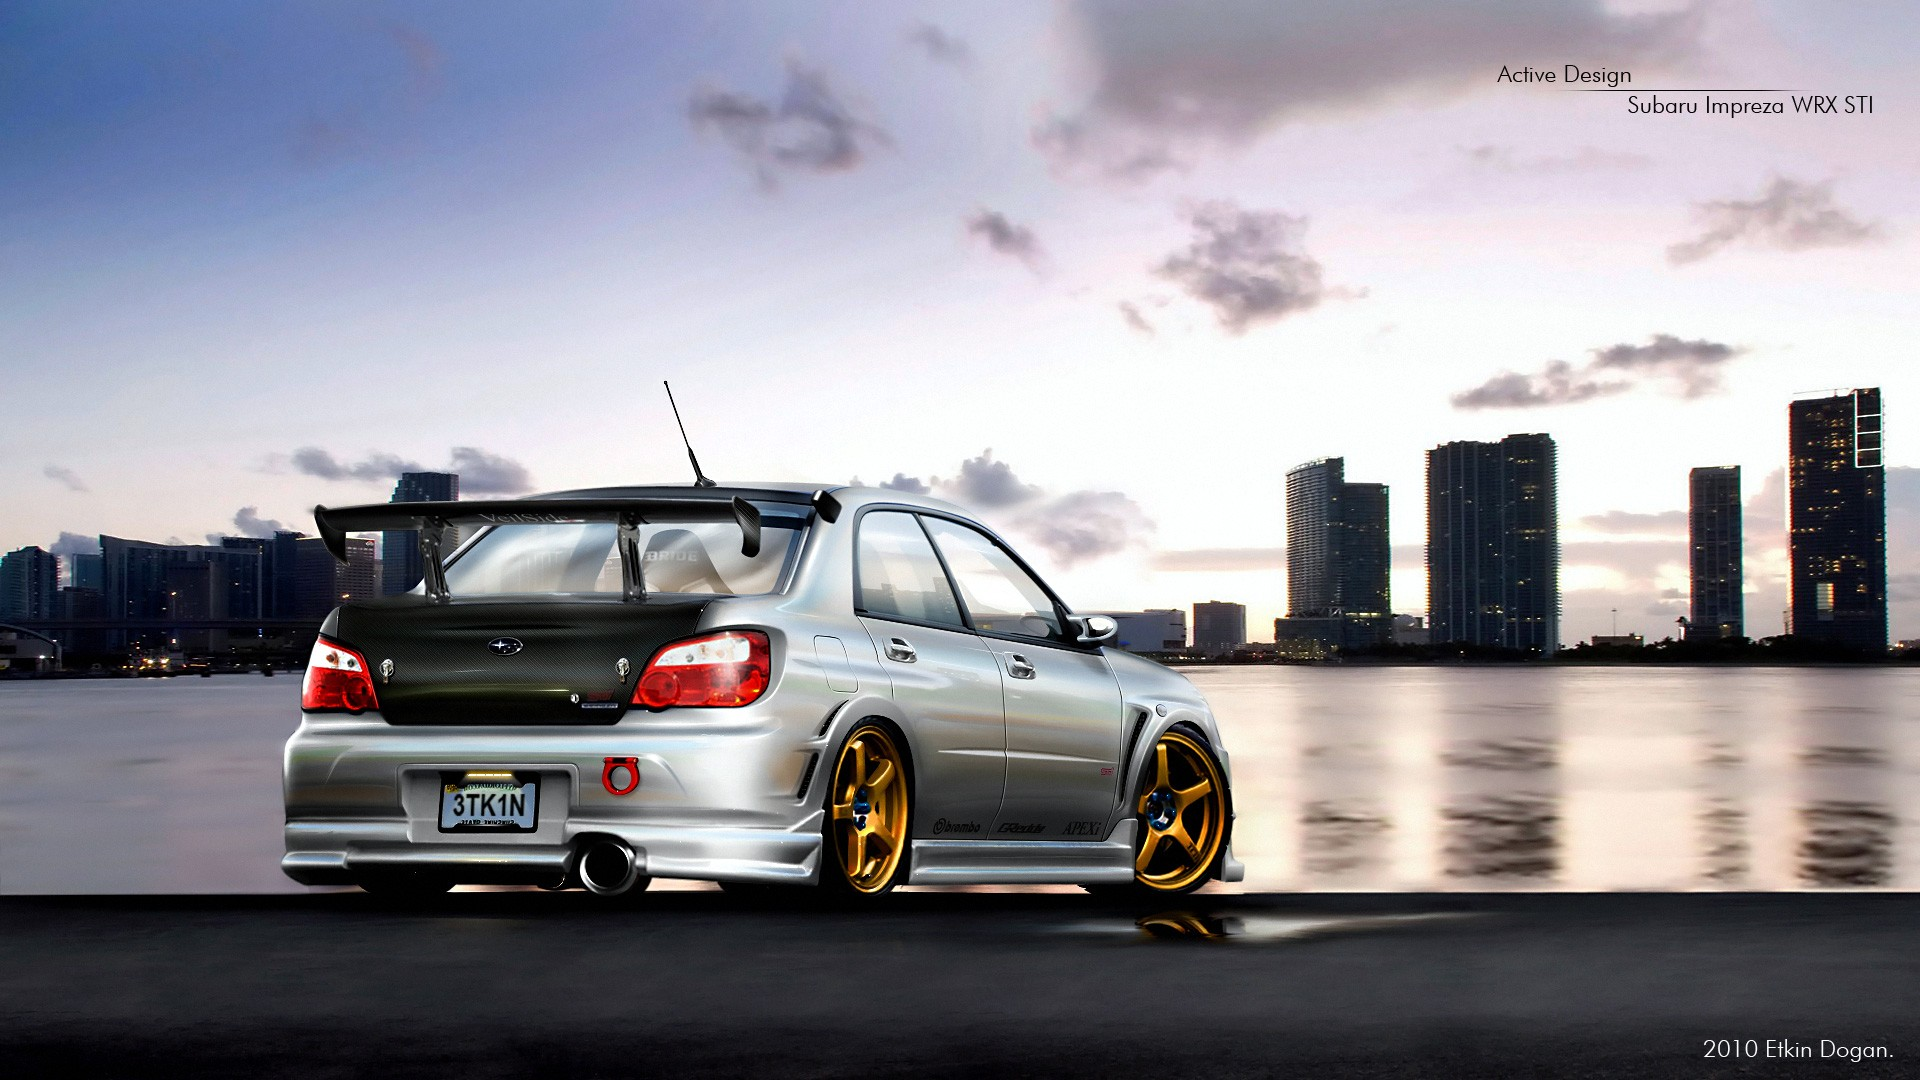 subaru wrx sti wallpaper wallpapersafari. Black Bedroom Furniture Sets. Home Design Ideas